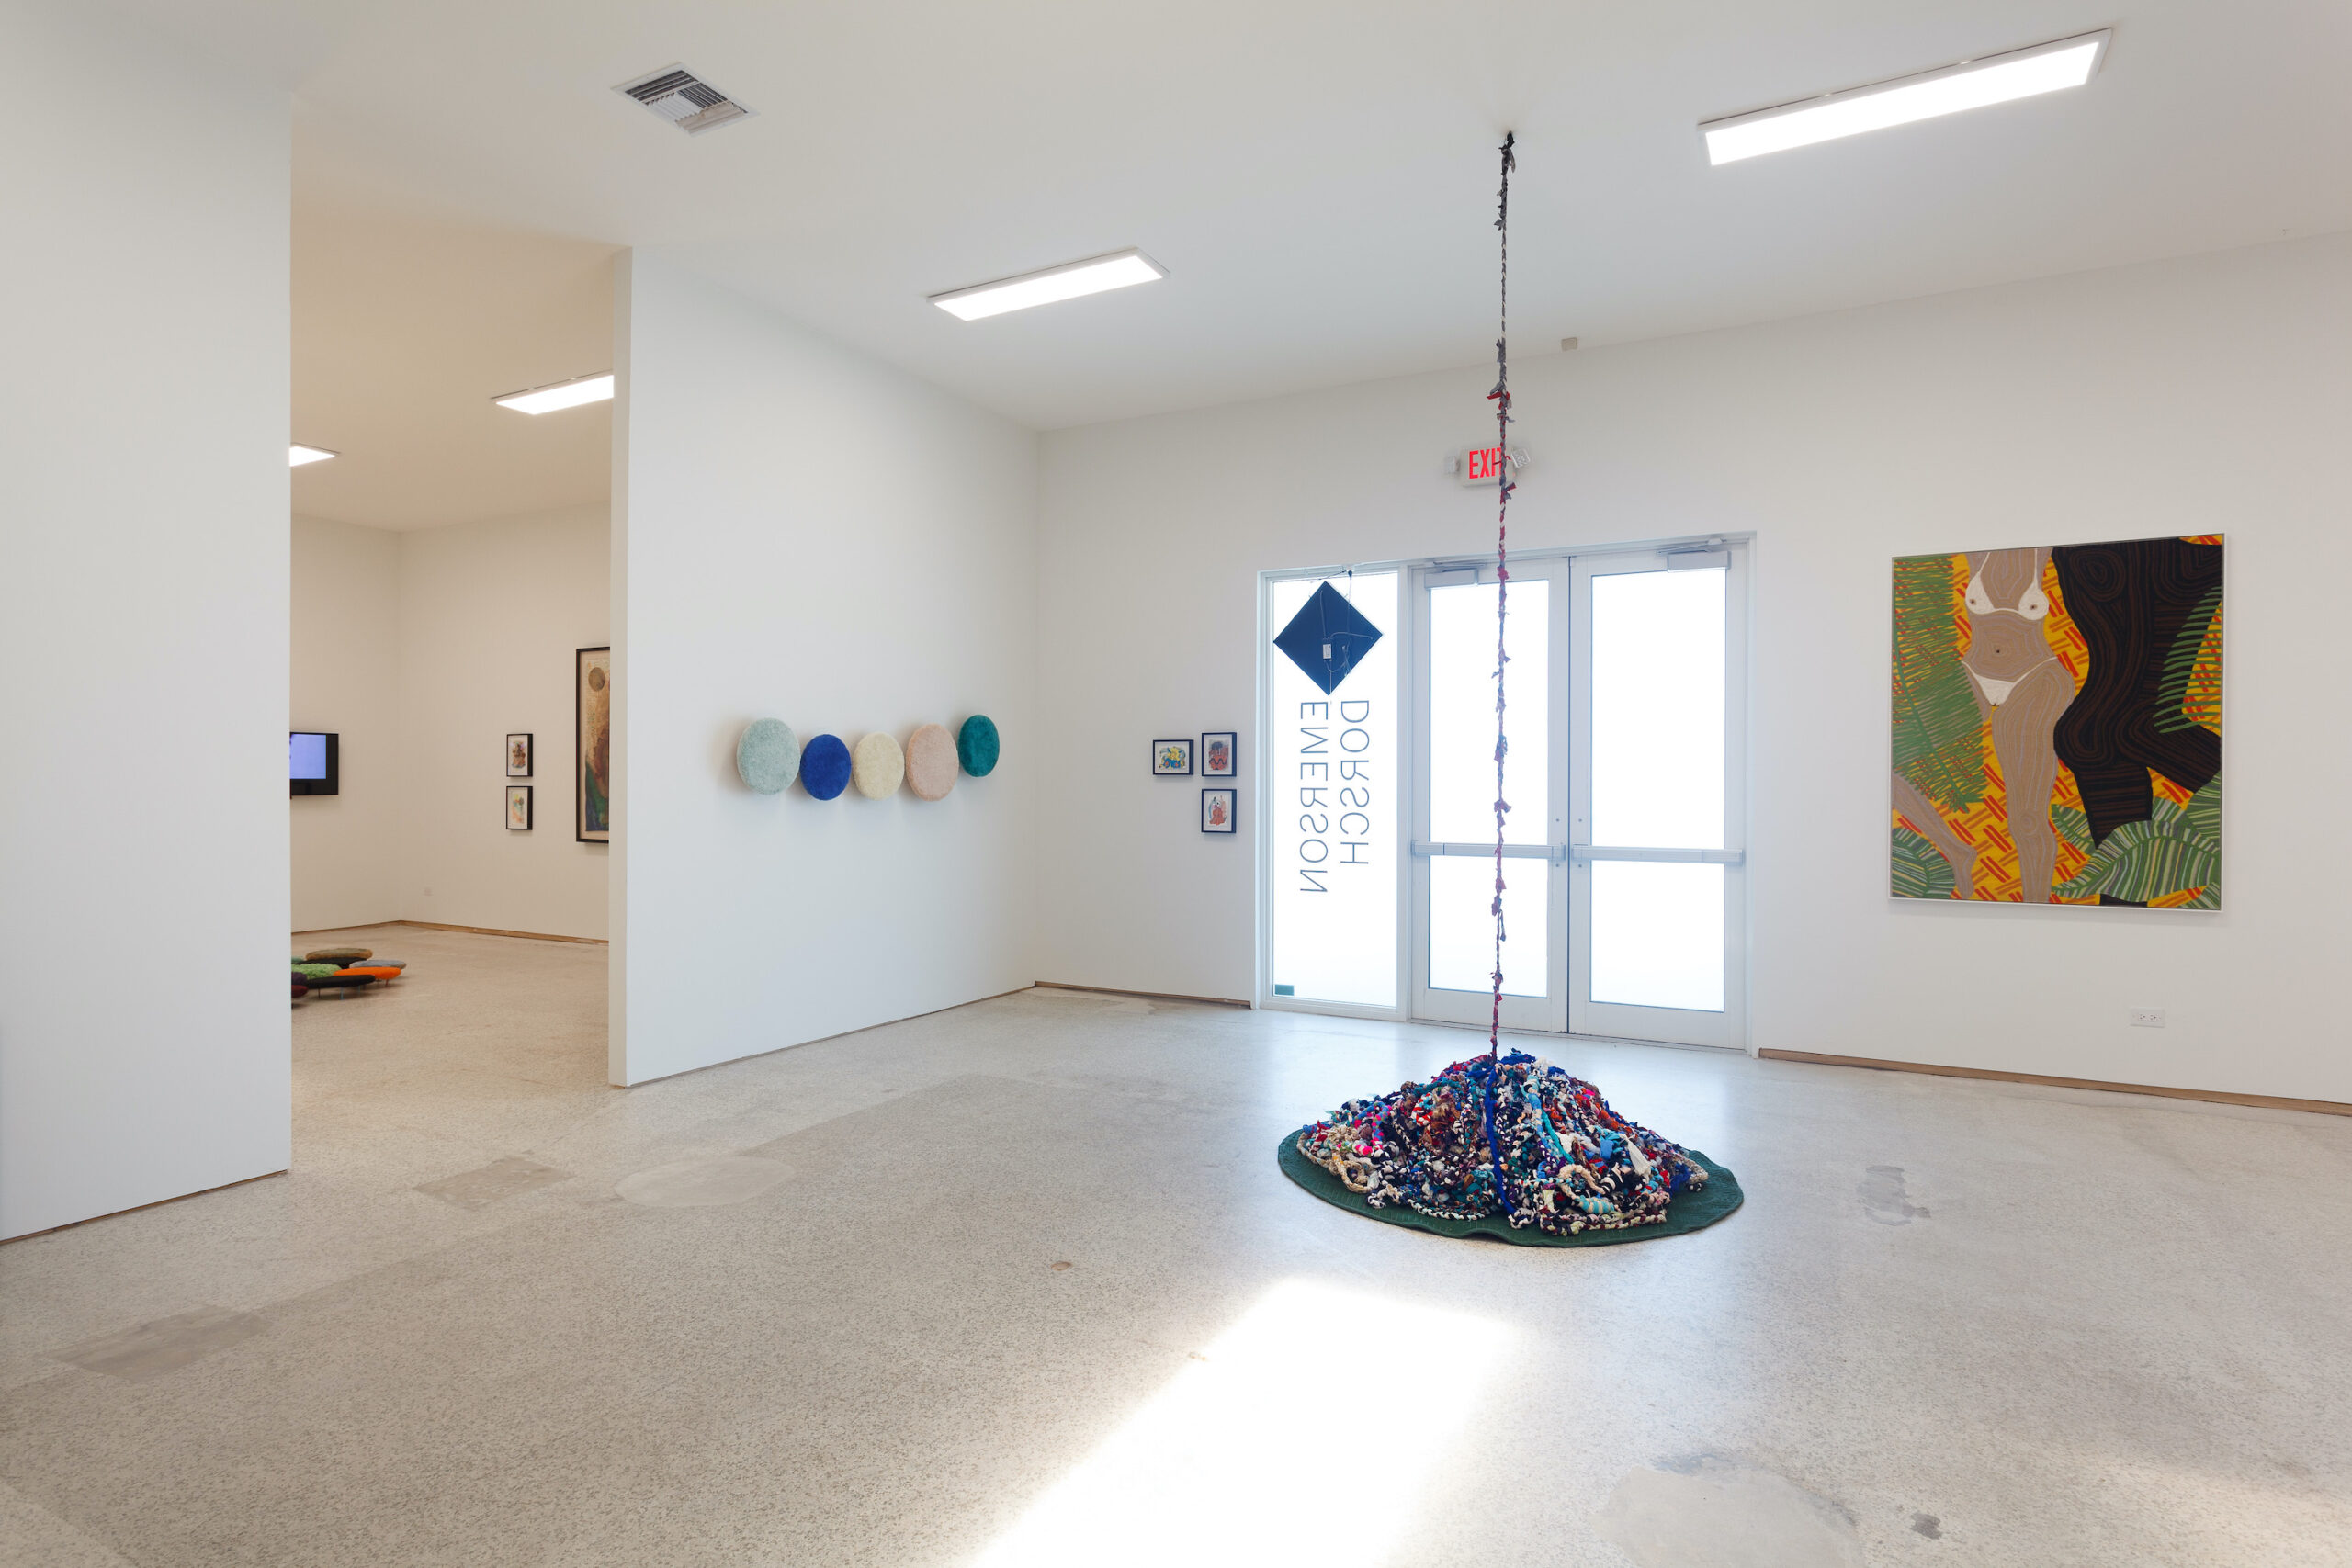 our constellations: astral embraces and tactual consciousness (Installation view h), 2021, Emerson Dorsch, Miami FL